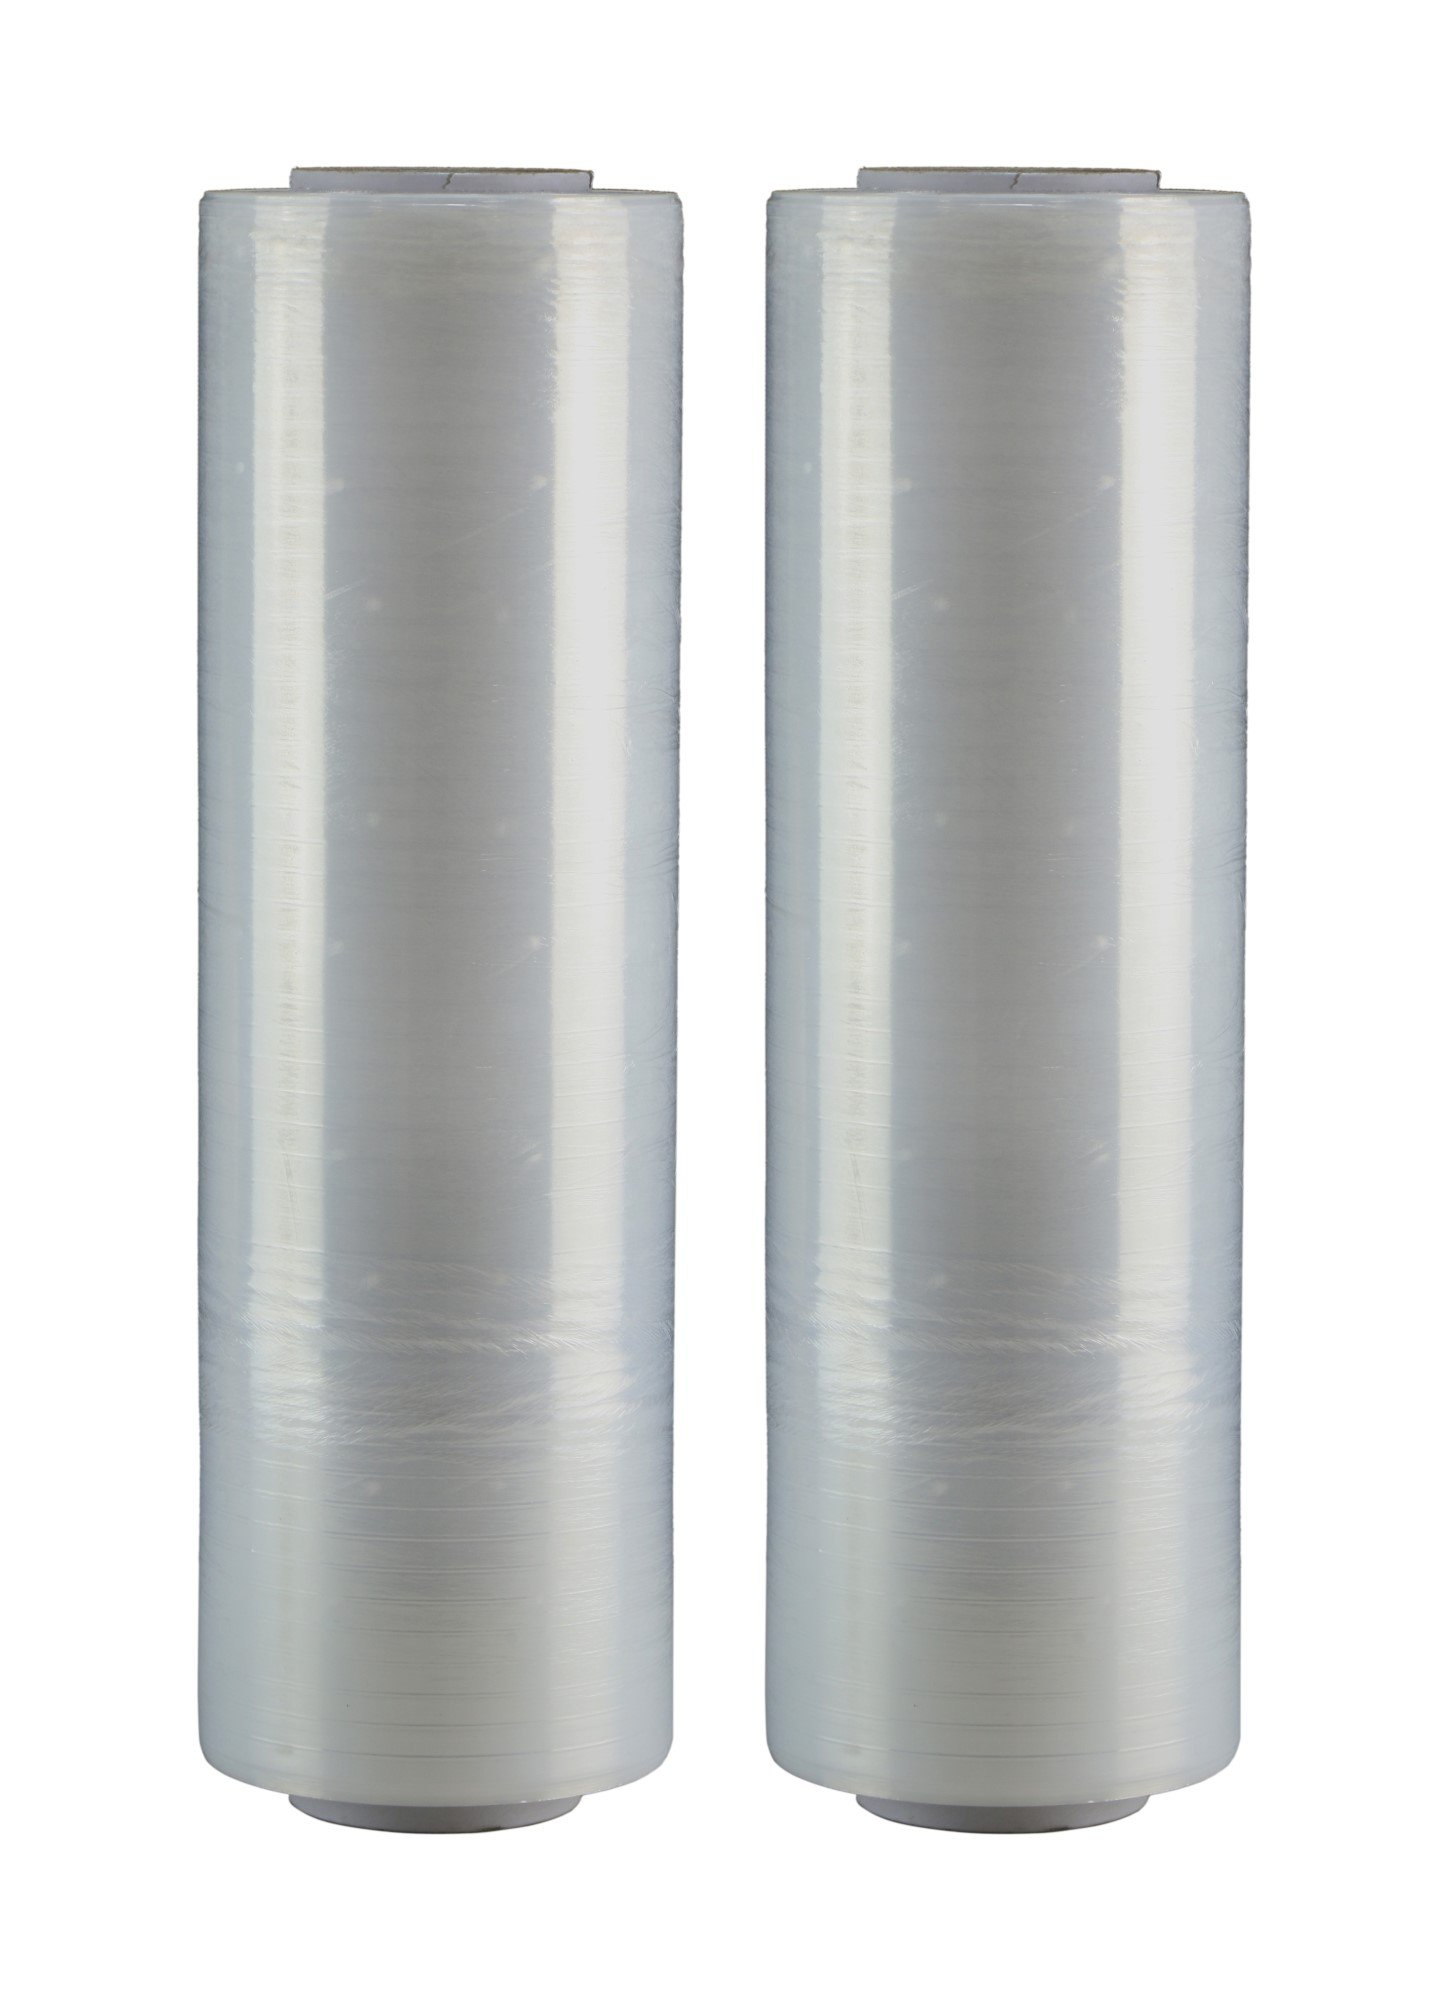 """AMERIQUE Shrink Wrap 2 Pack (3000FTX18"""", 20LBS Total): Stretch Film Plastic Wrap - Industrial Strength Hand Stretch Wrap, 18""""x 1,500 FT Per Roll, 80 Gauge Shrink Film / Pallet Wrap – Clear"""